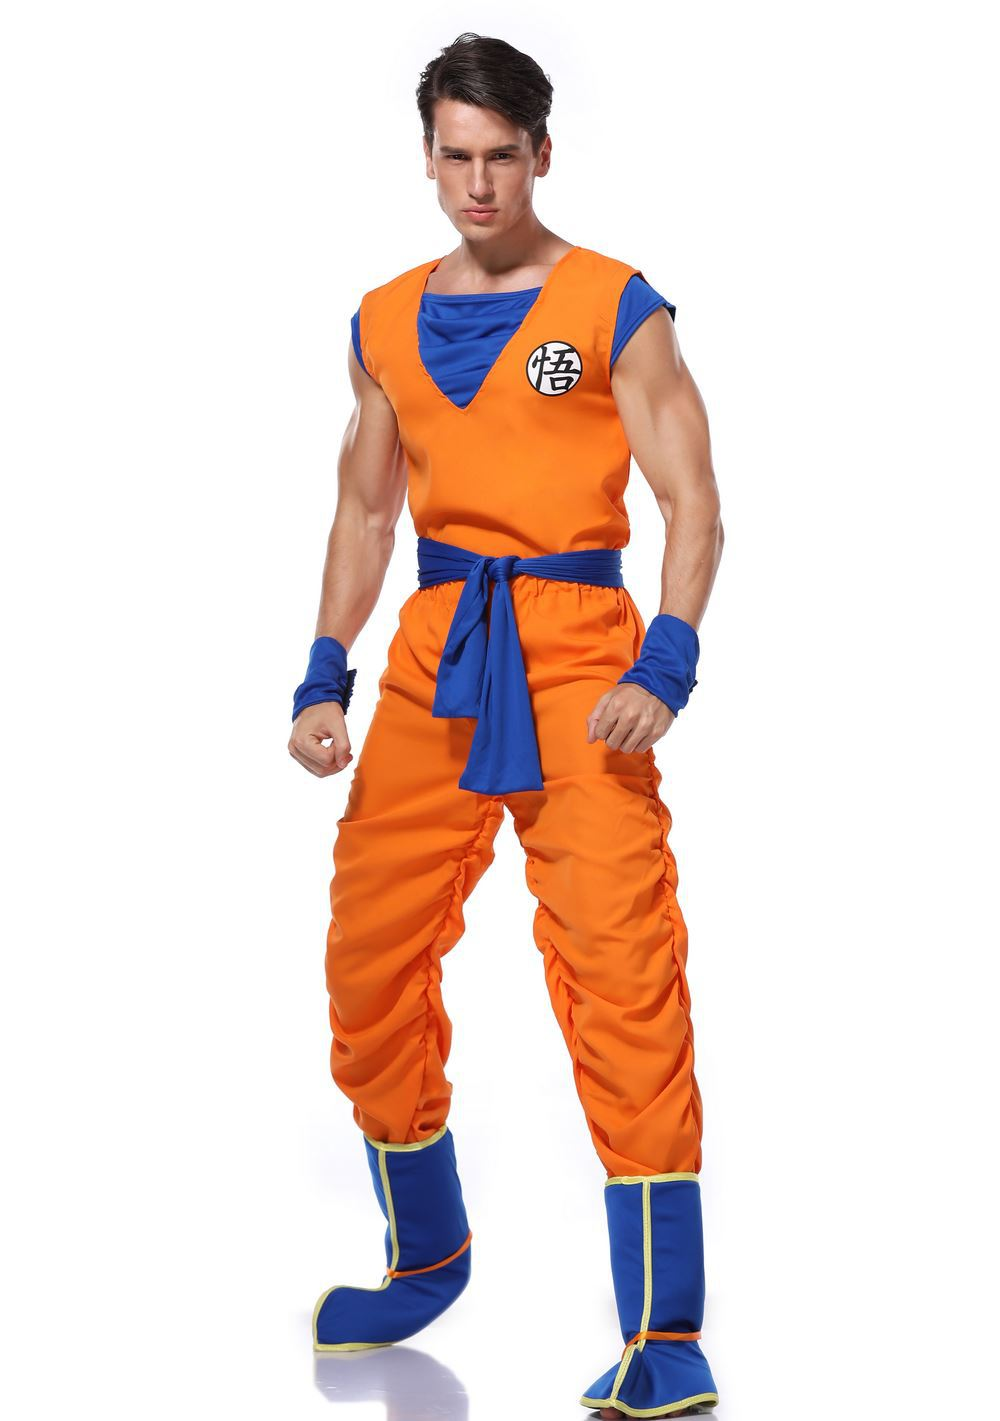 Dragon Ball Z Goku Costume Suit Son Cosplay Costumes For Adult Boys Girl Kid Child Wig Clothes Set Fancy Halloween